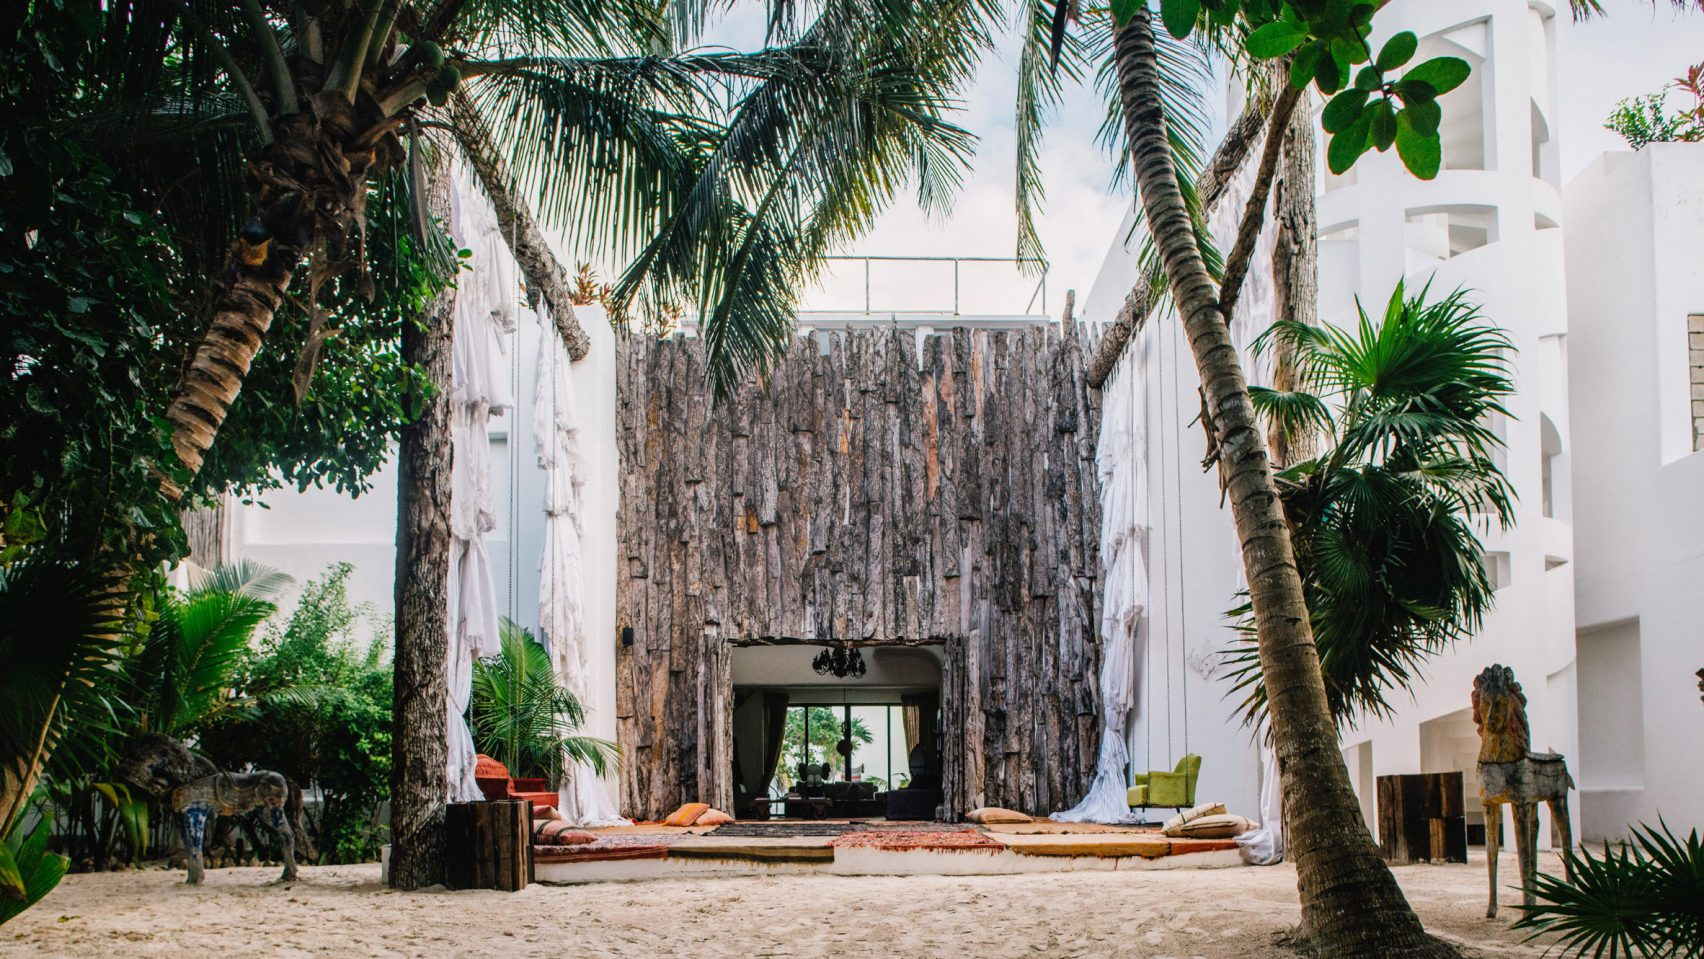 Pics - Take a look inside this Mexican luxury boutique resort which was once Pablo Escobar's home -